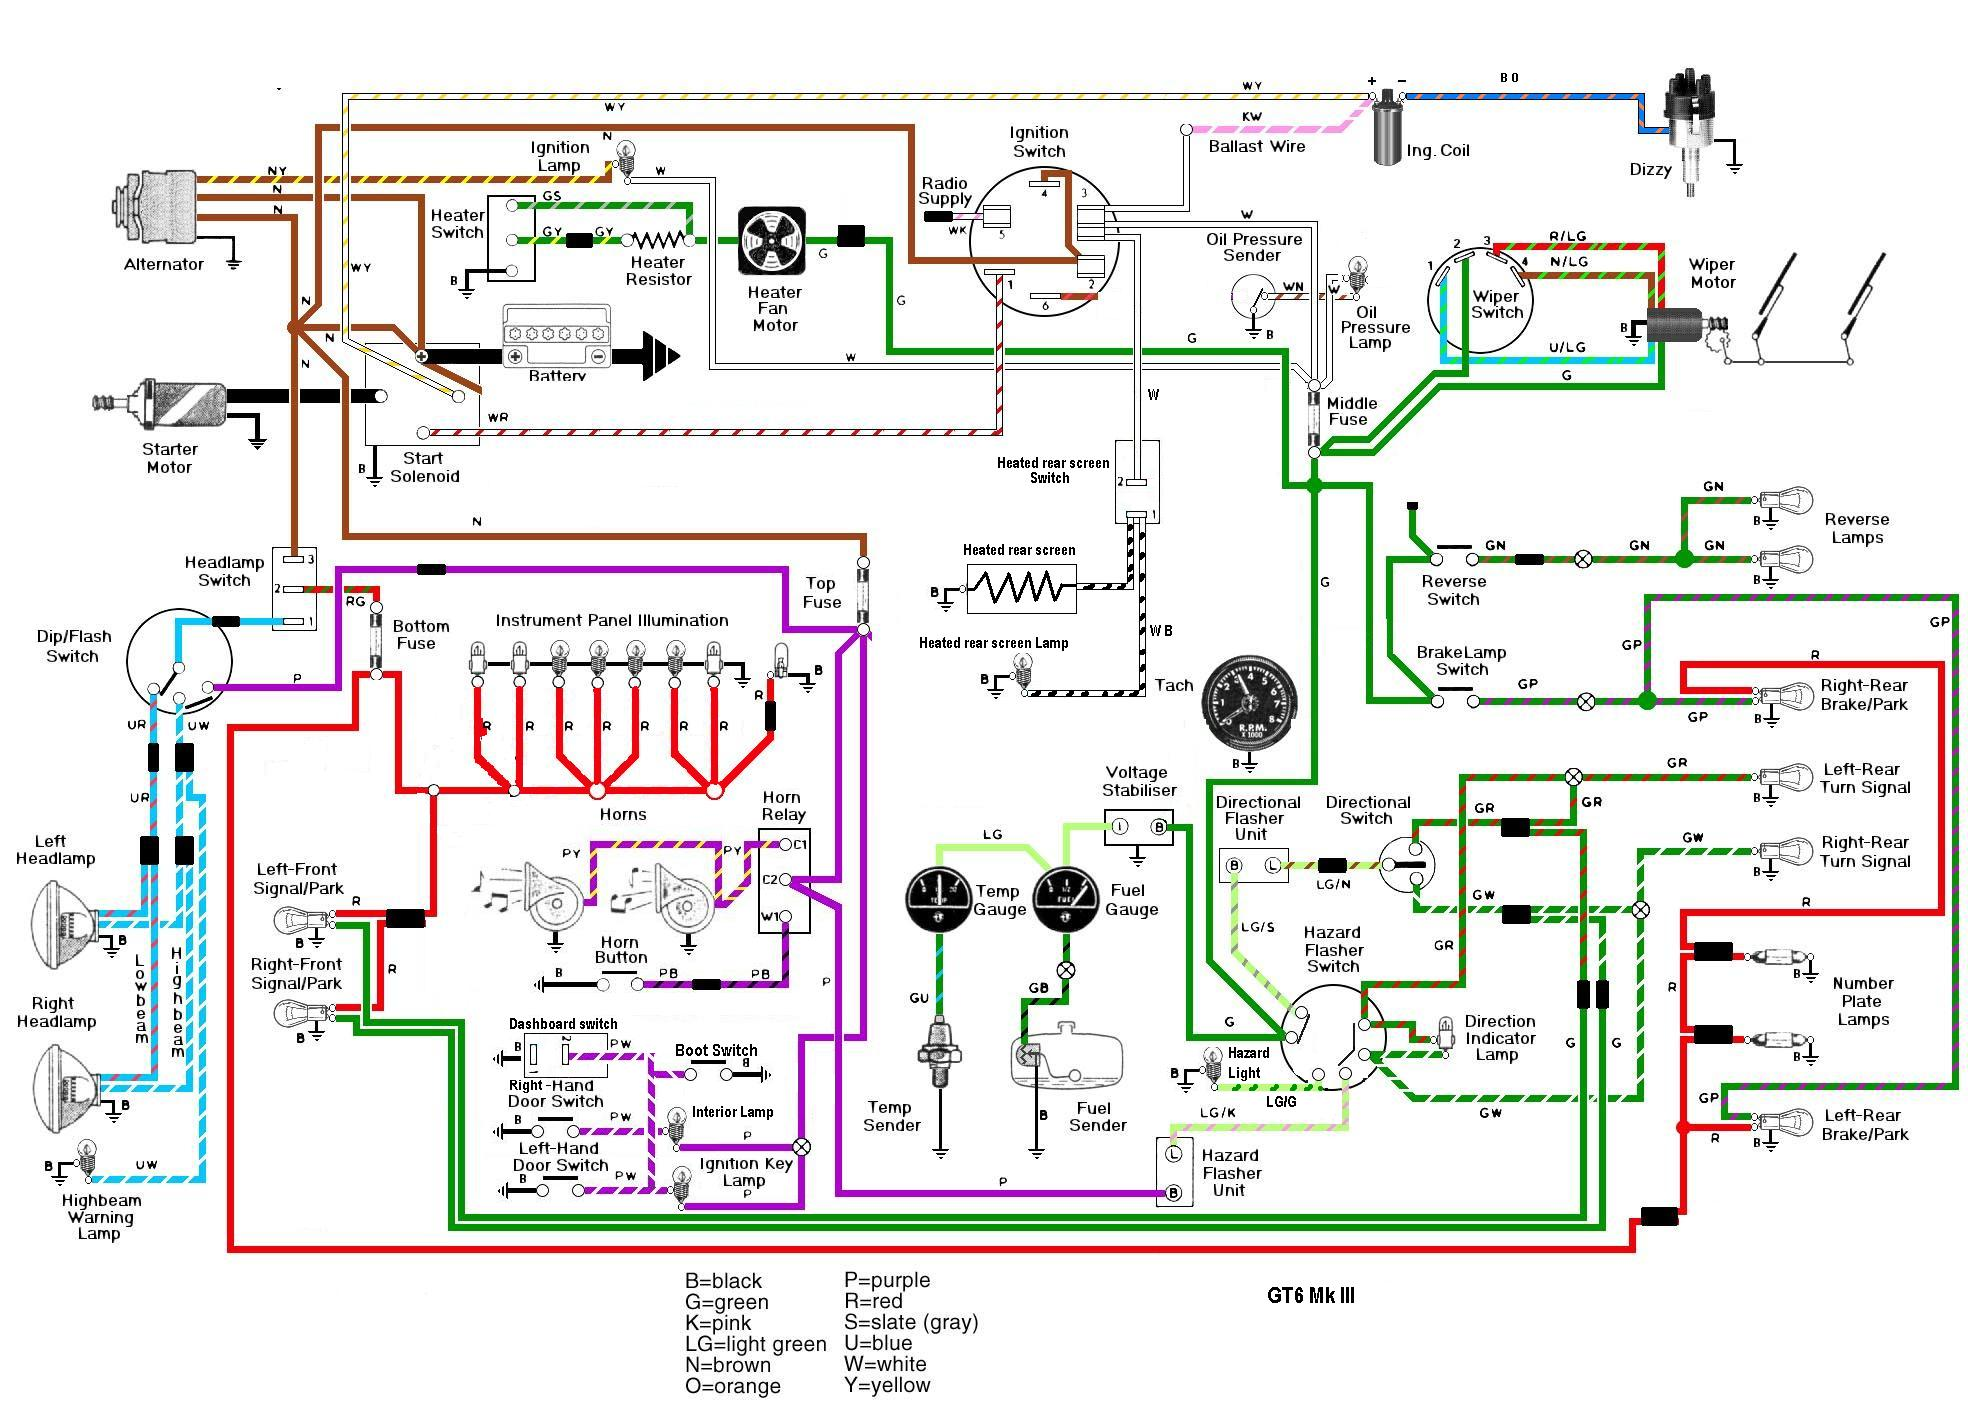 GT6MkIIIwiring wiring schematics and diagrams triumph spitfire, gt6, herald wiring diagram at panicattacktreatment.co